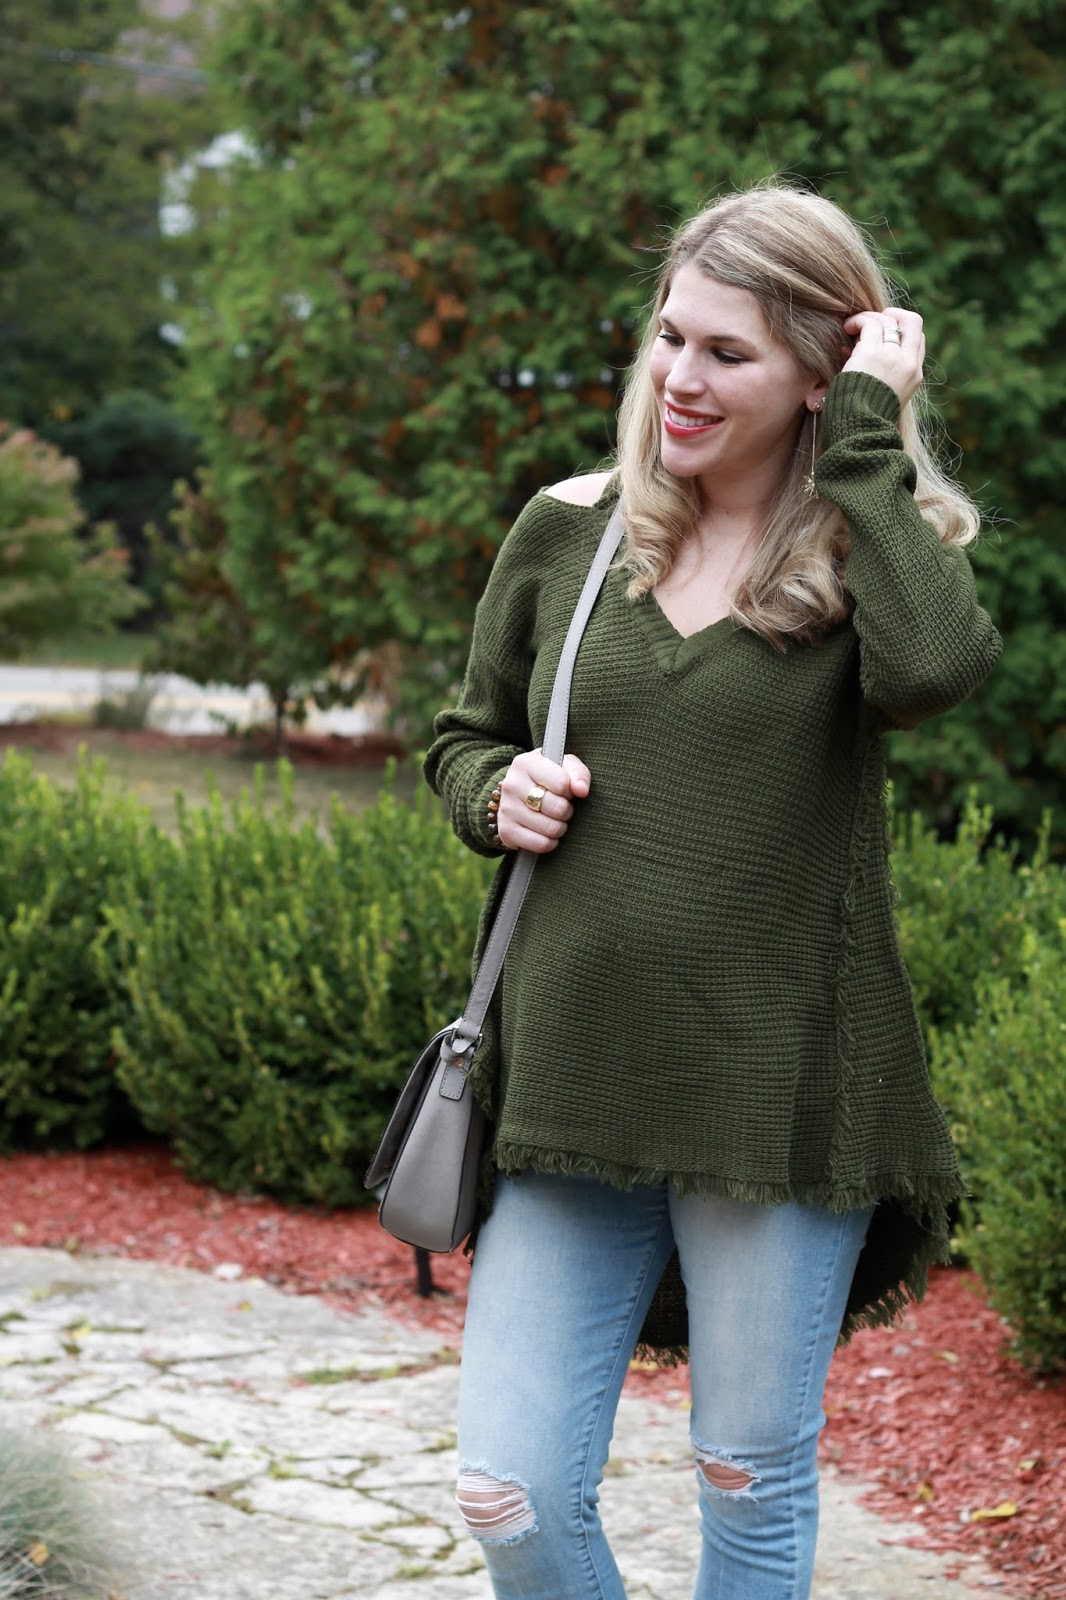 SheIn olive cold shoulder sweater, PinkBlush distressed maternity jeans, grey peep toe booties, grey saddle bag